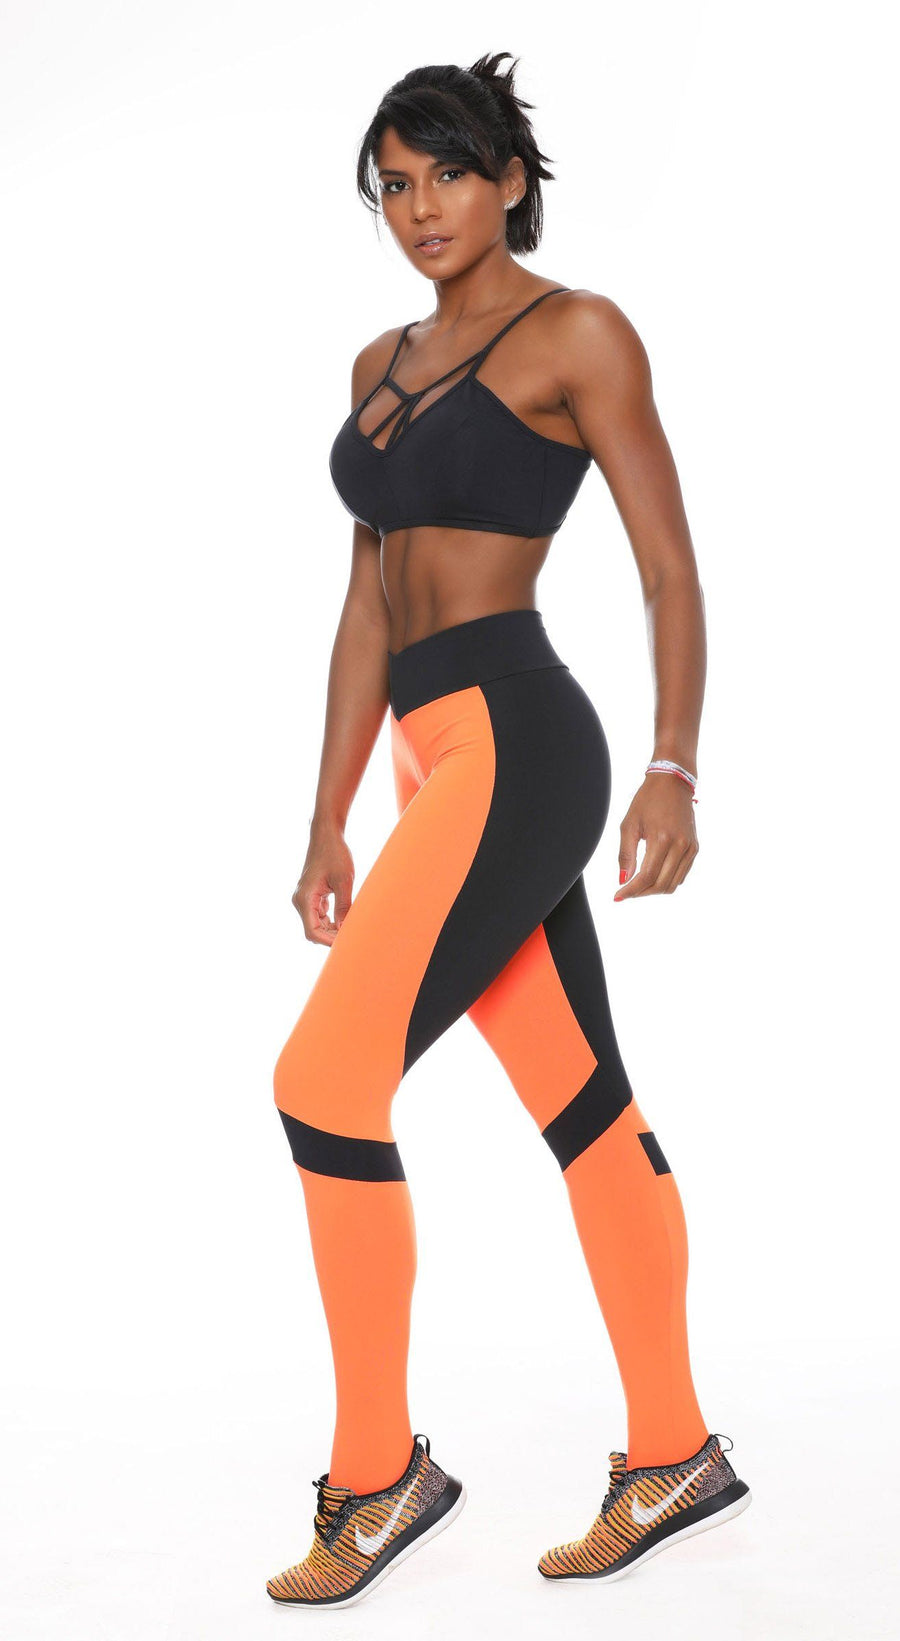 Brazilian Gym Legging - V Shape Fit 2 Vibes Orange & Black